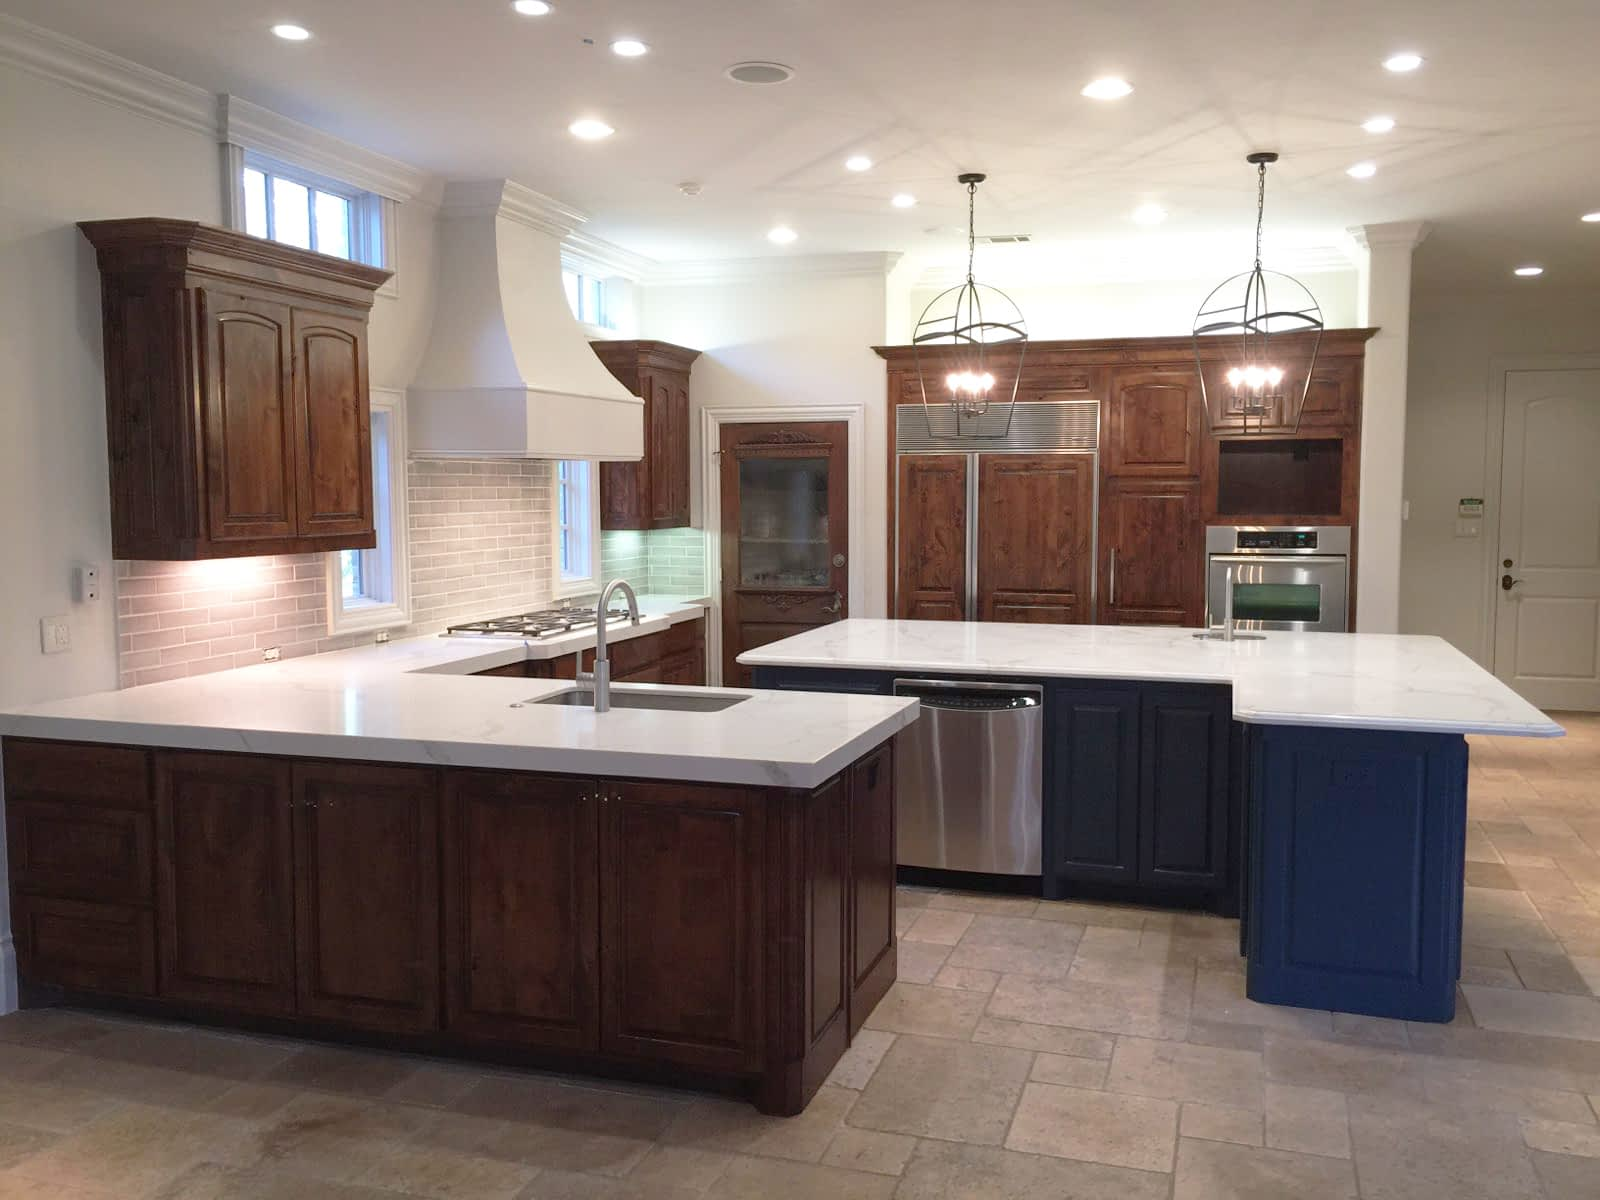 Home remodeling Dallas